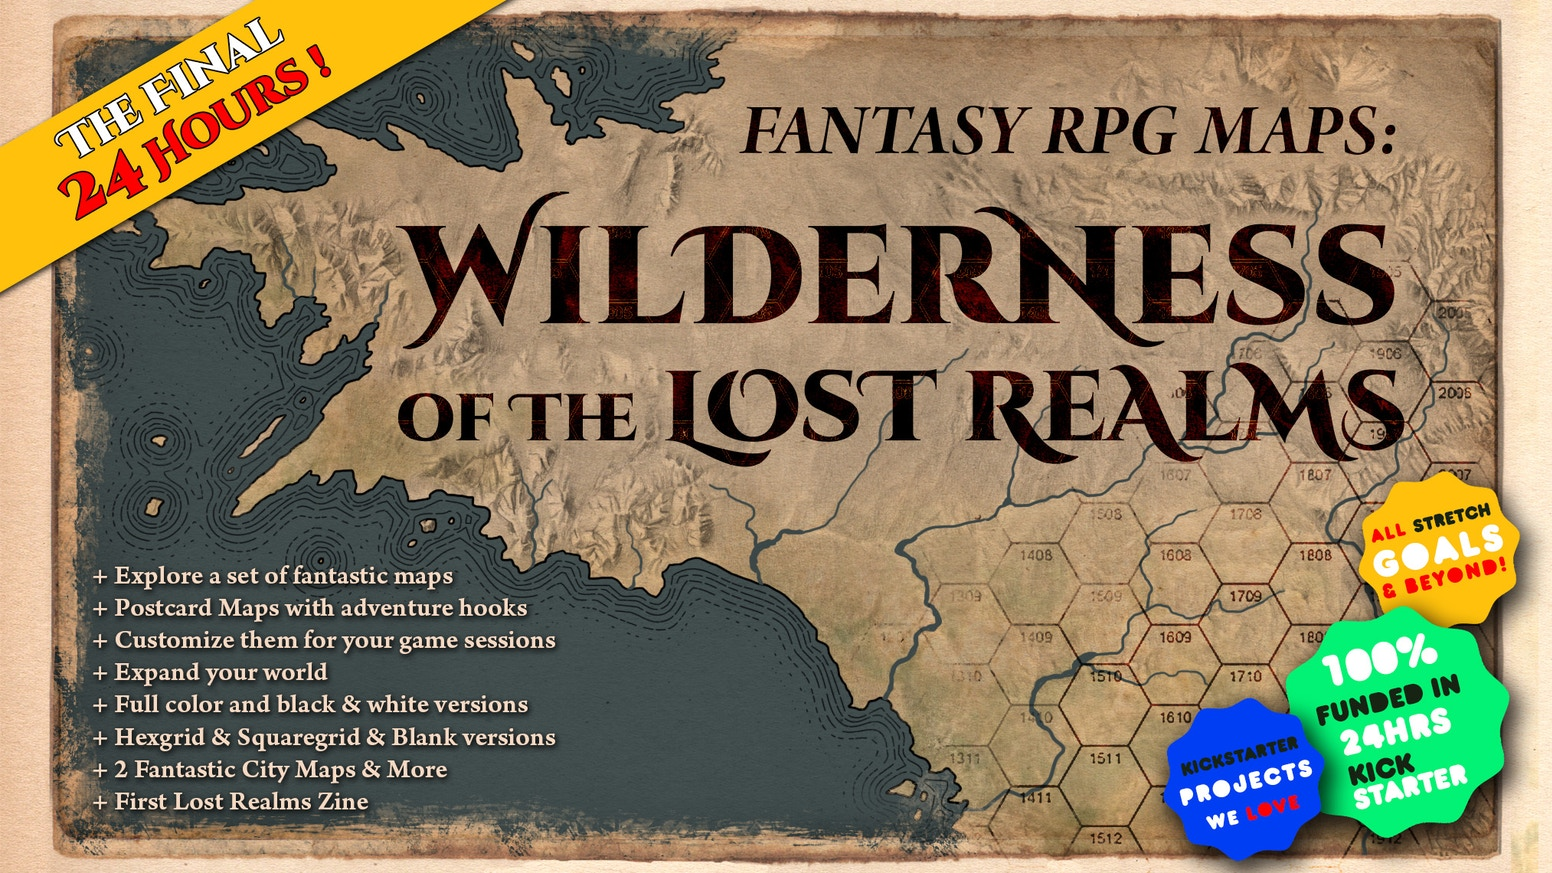 Explore the Wilderness of the Lost Realms through this high-quality set of digital maps, all ready to be included in your RPG campaign.